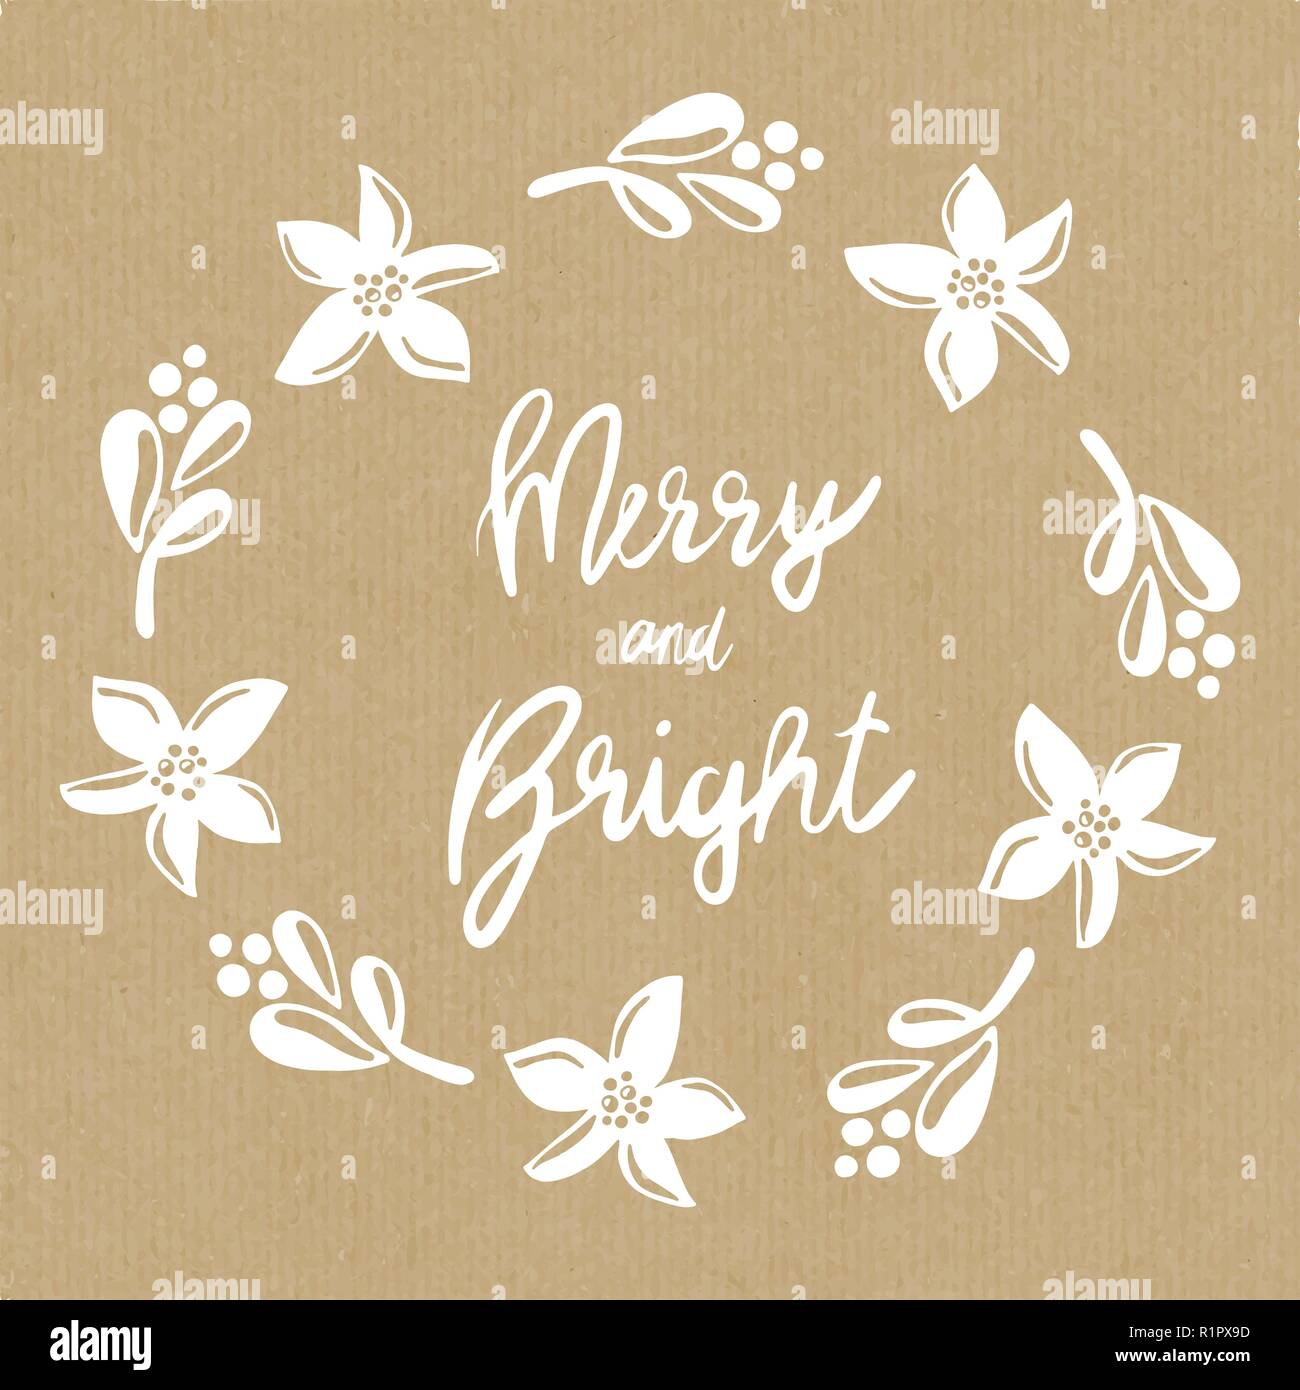 Merry And Bright Mistletoes Christmas Flower Wreath Vector